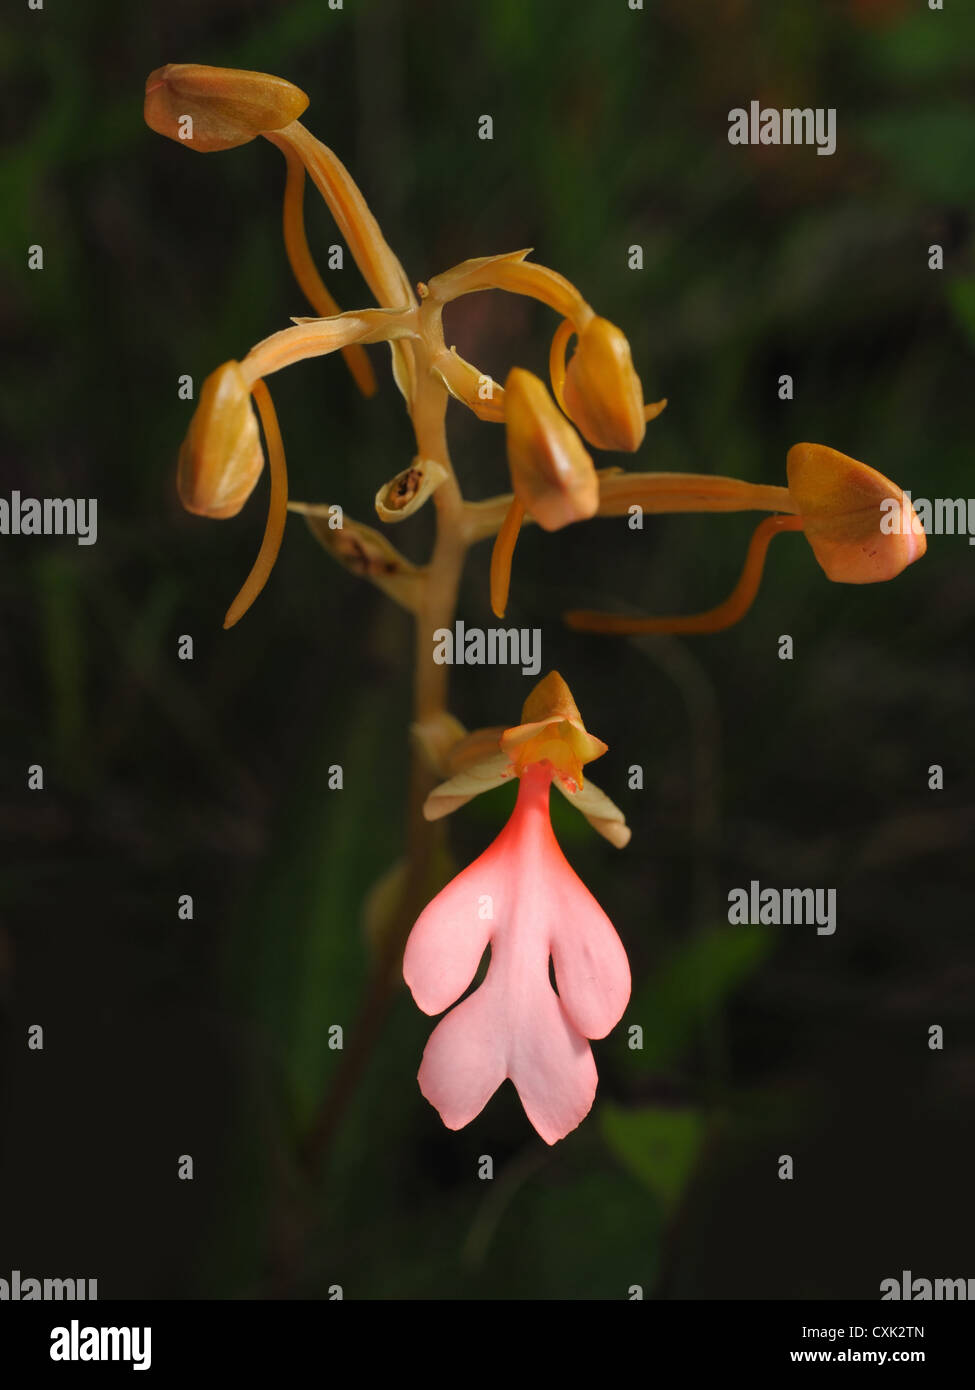 The Pink-Lipped Habenaria (Pink Snap Dragon Flower) found in tropical rain forests, National park, Thailand. Stock Photo